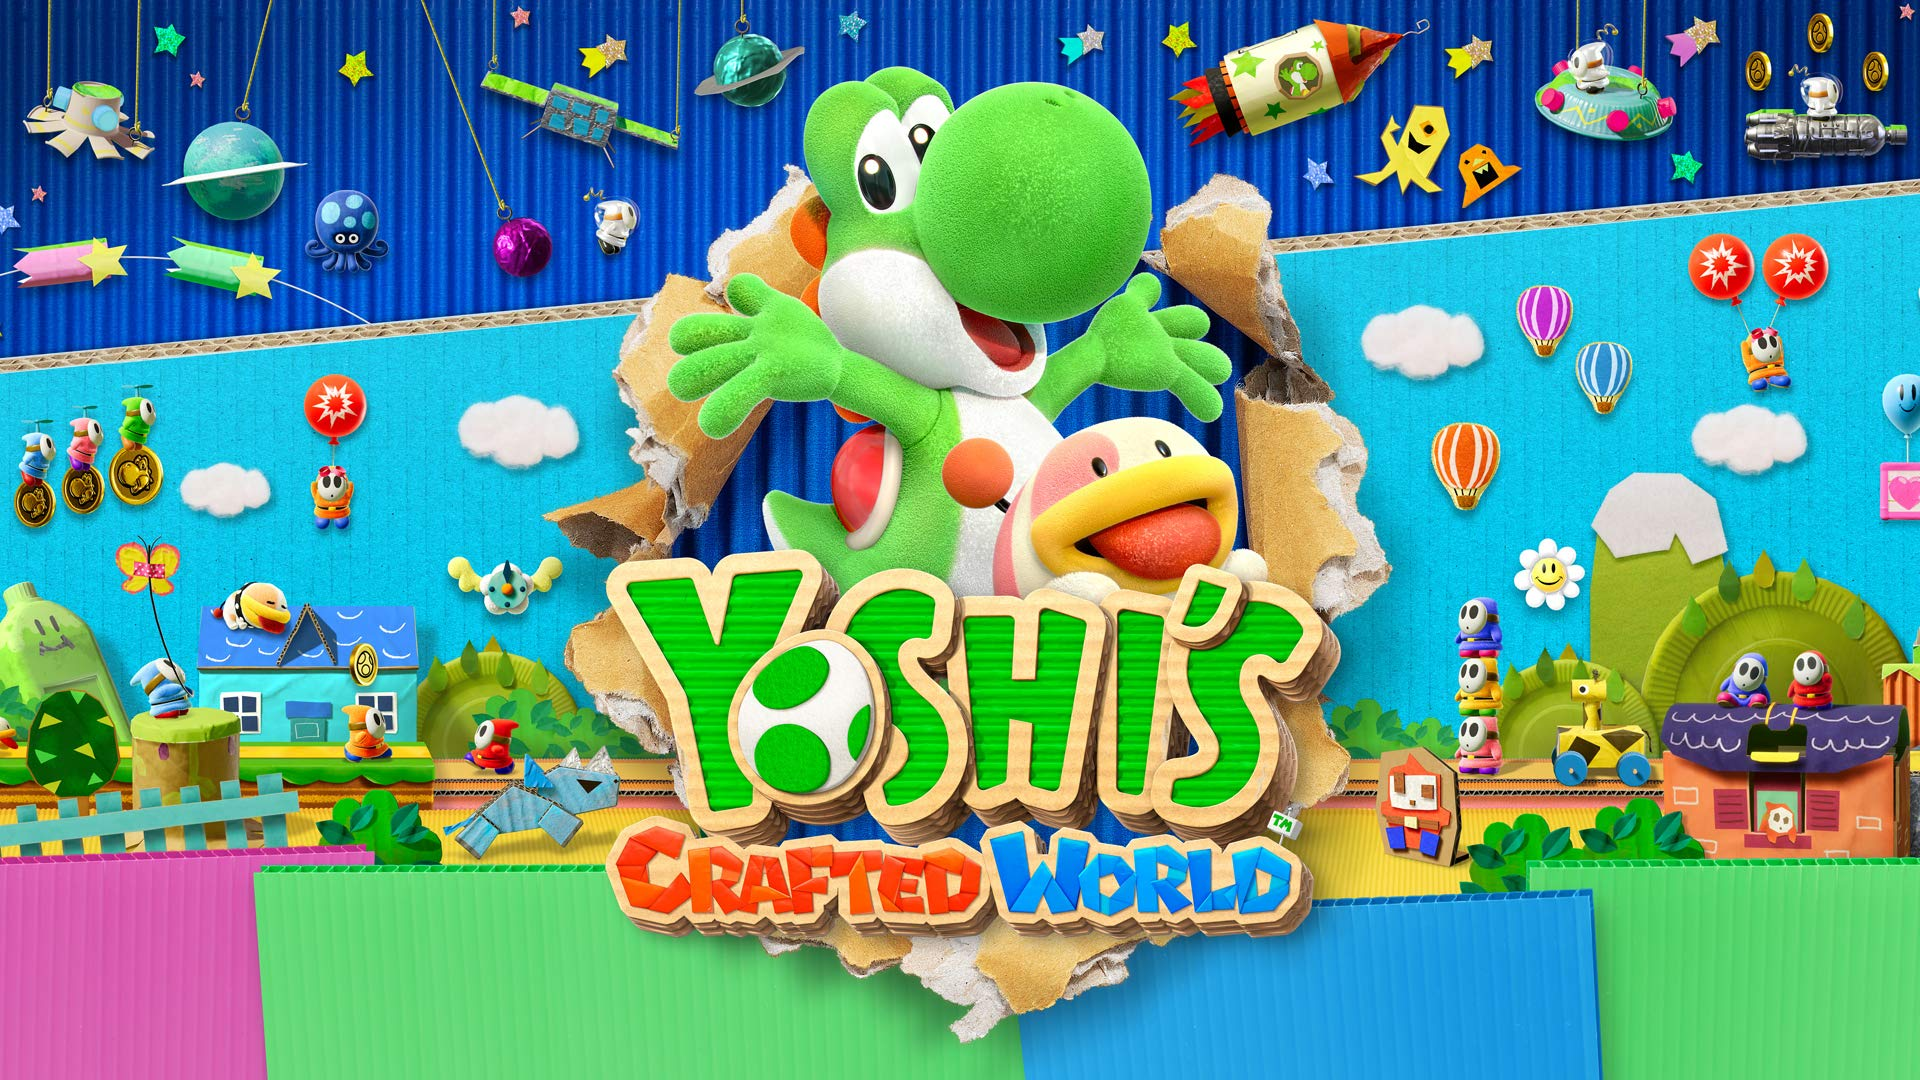 Yoshi's Crafted World - Nintendo Switch [Digital Code]